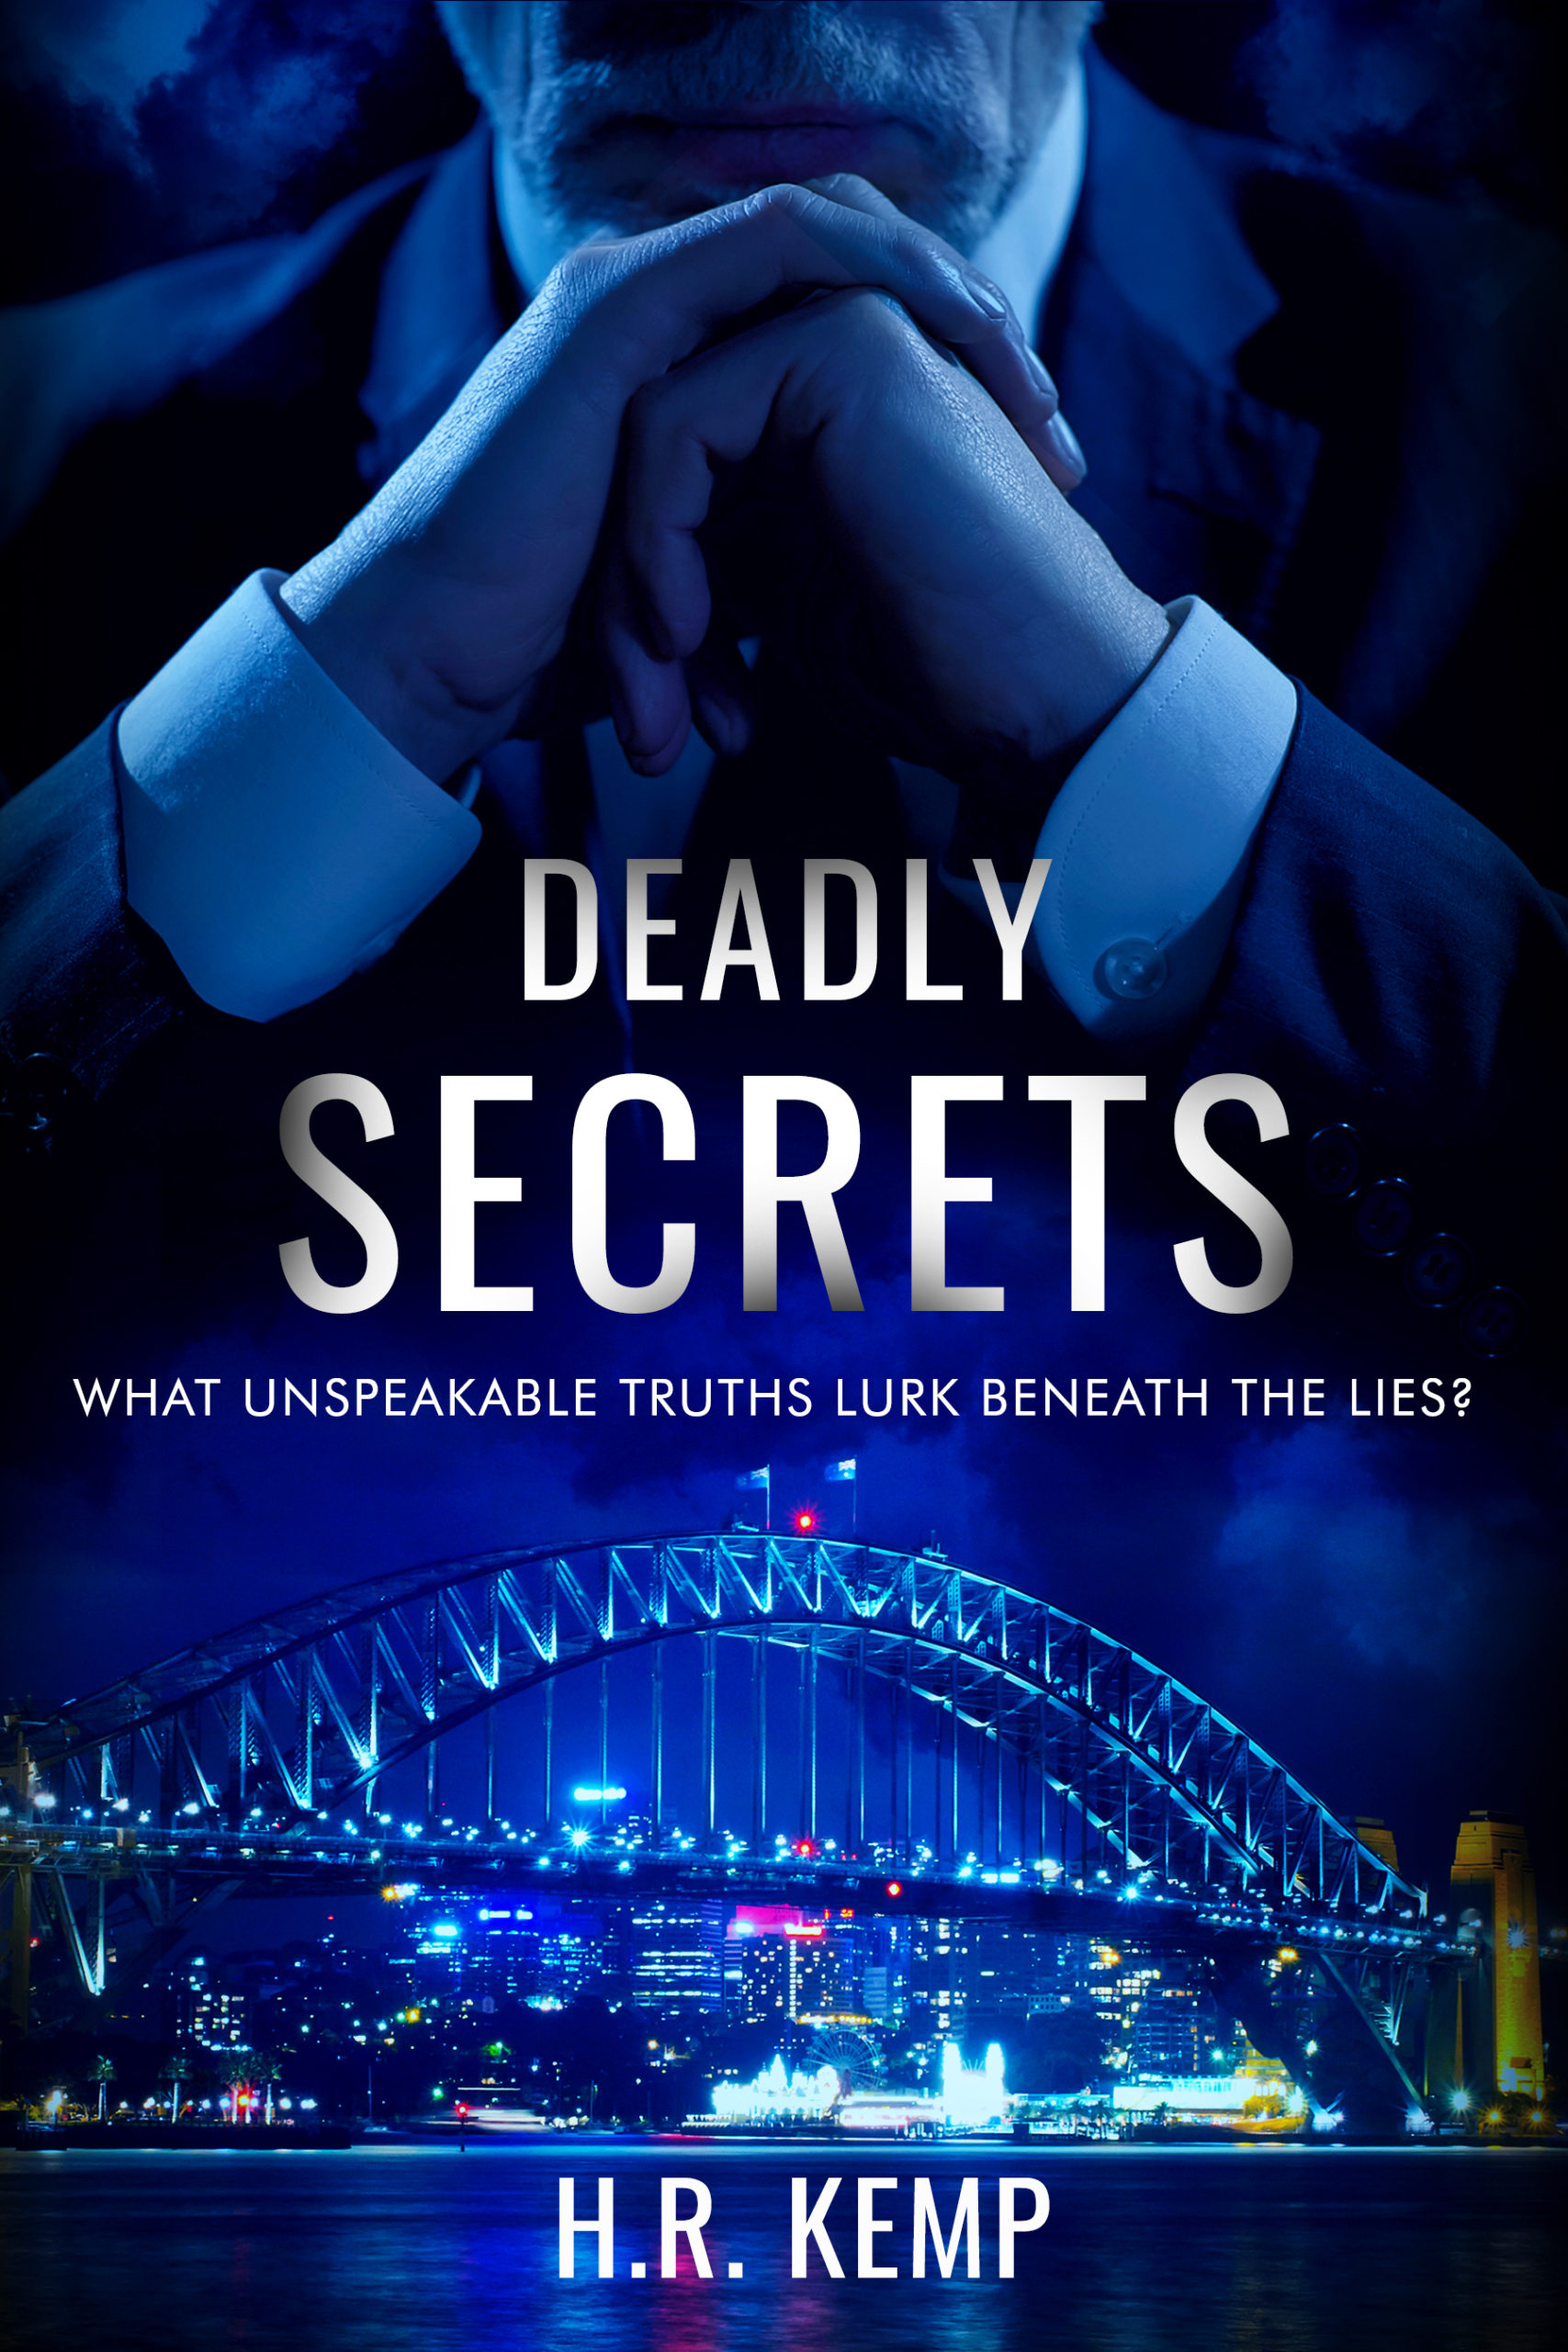 deadly-secrets-political-thriller cover design